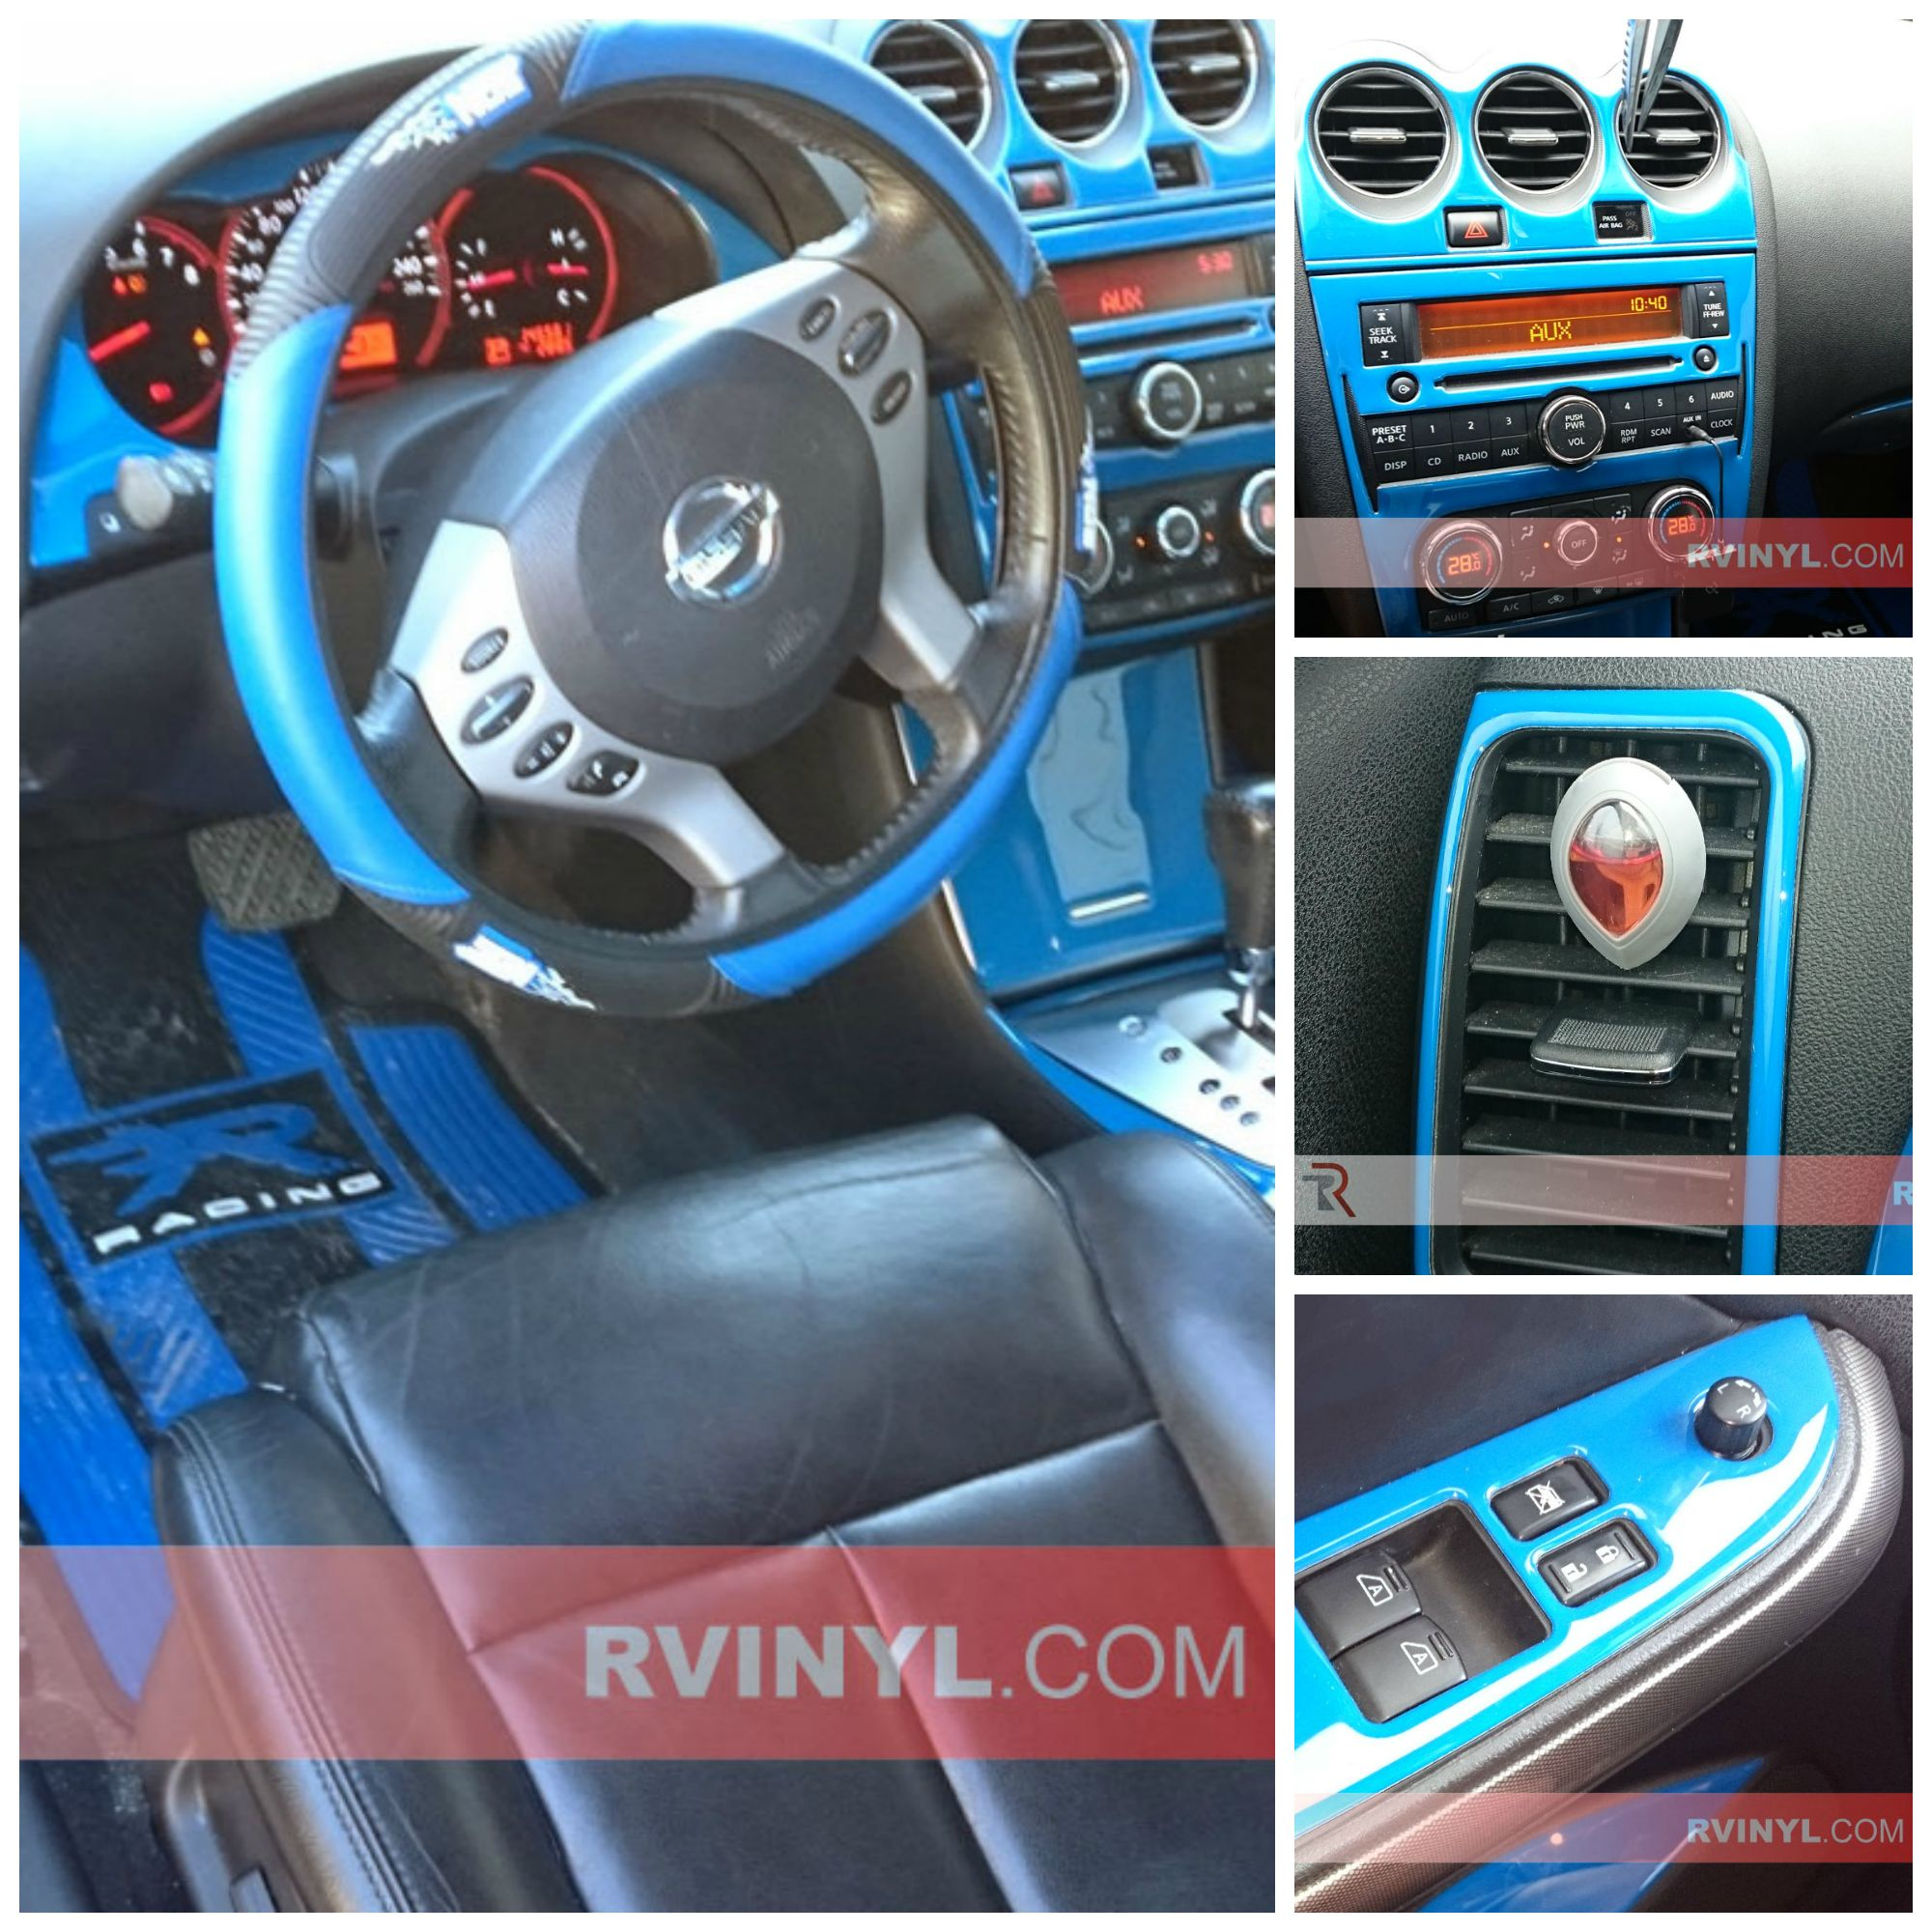 2008 nissan altima coupe with a gloss blue dash kit upgrade 2008 nissan altima coupe with a gloss blue dash kit upgrade vanachro Gallery